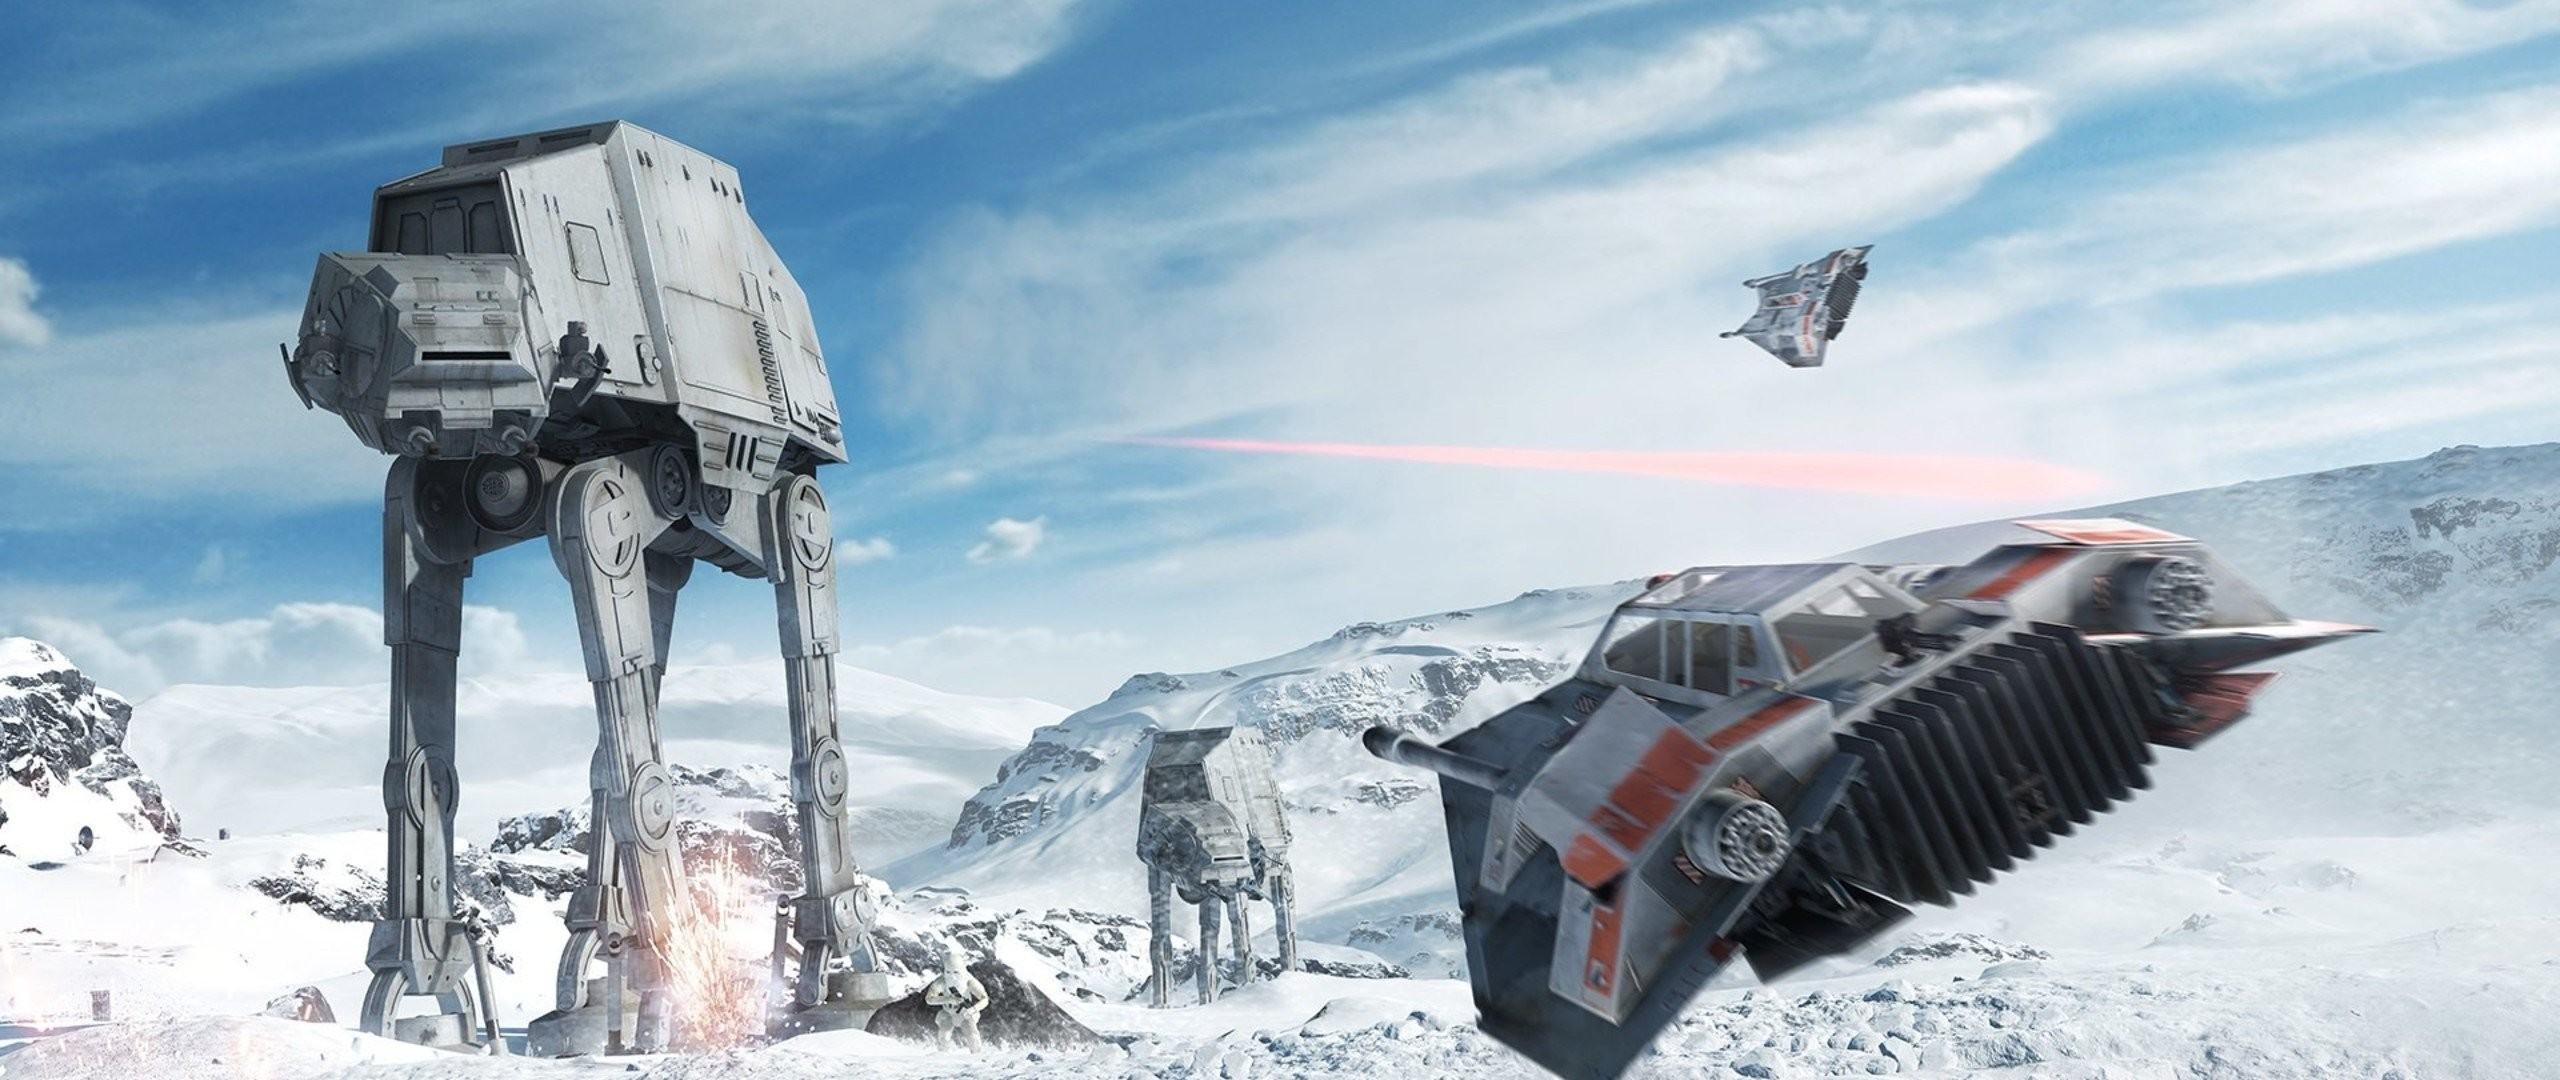 2560x1080 STAR WARS BATTLEFRONT sci-fi 1swbattlefront action fighting futuristic  shooter wallpaper |  | 931354 | WallpaperUP